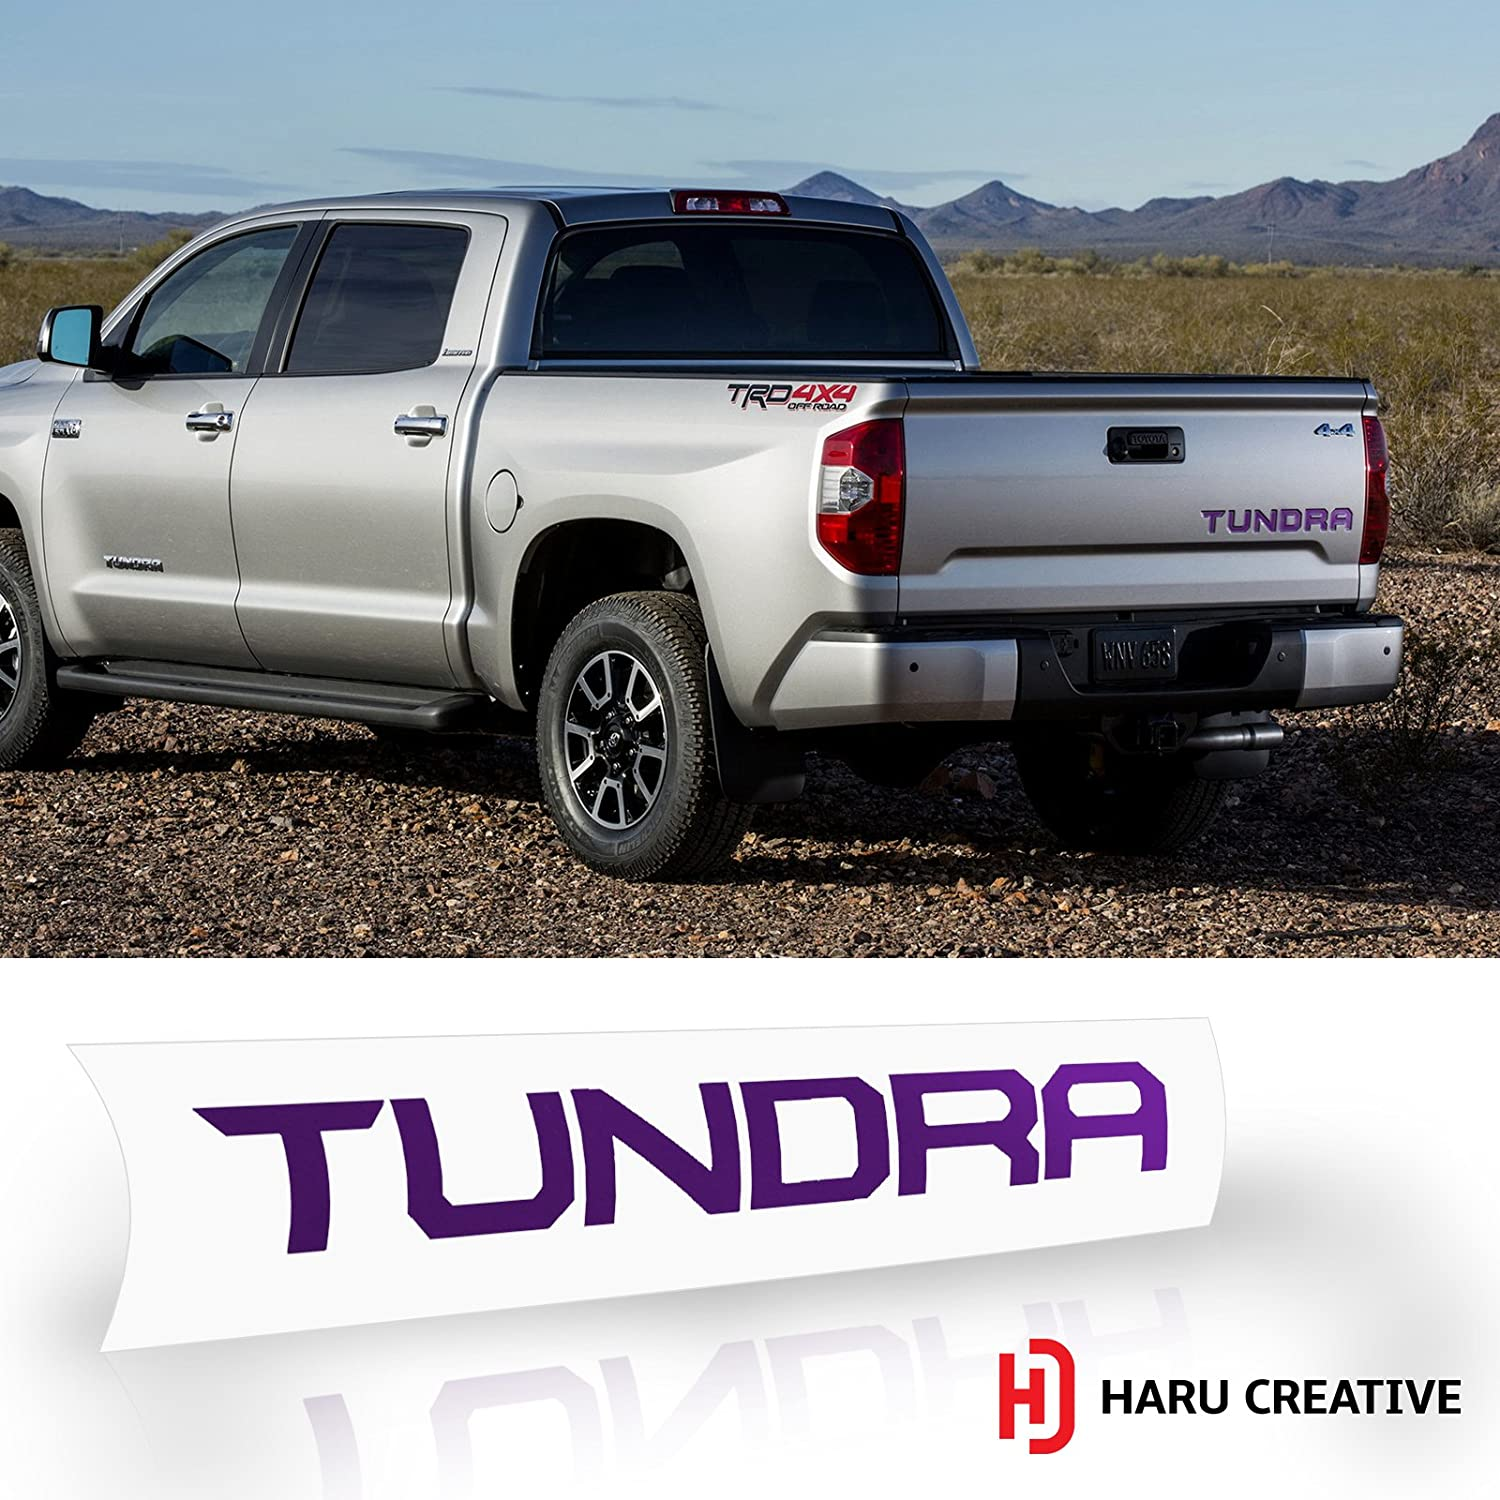 Rear Tailgate Trunk Letter Insert Decal Compatible with and Fits Toyota Tundra 2014-2018 Haru Creative Metallic Chrome Purple